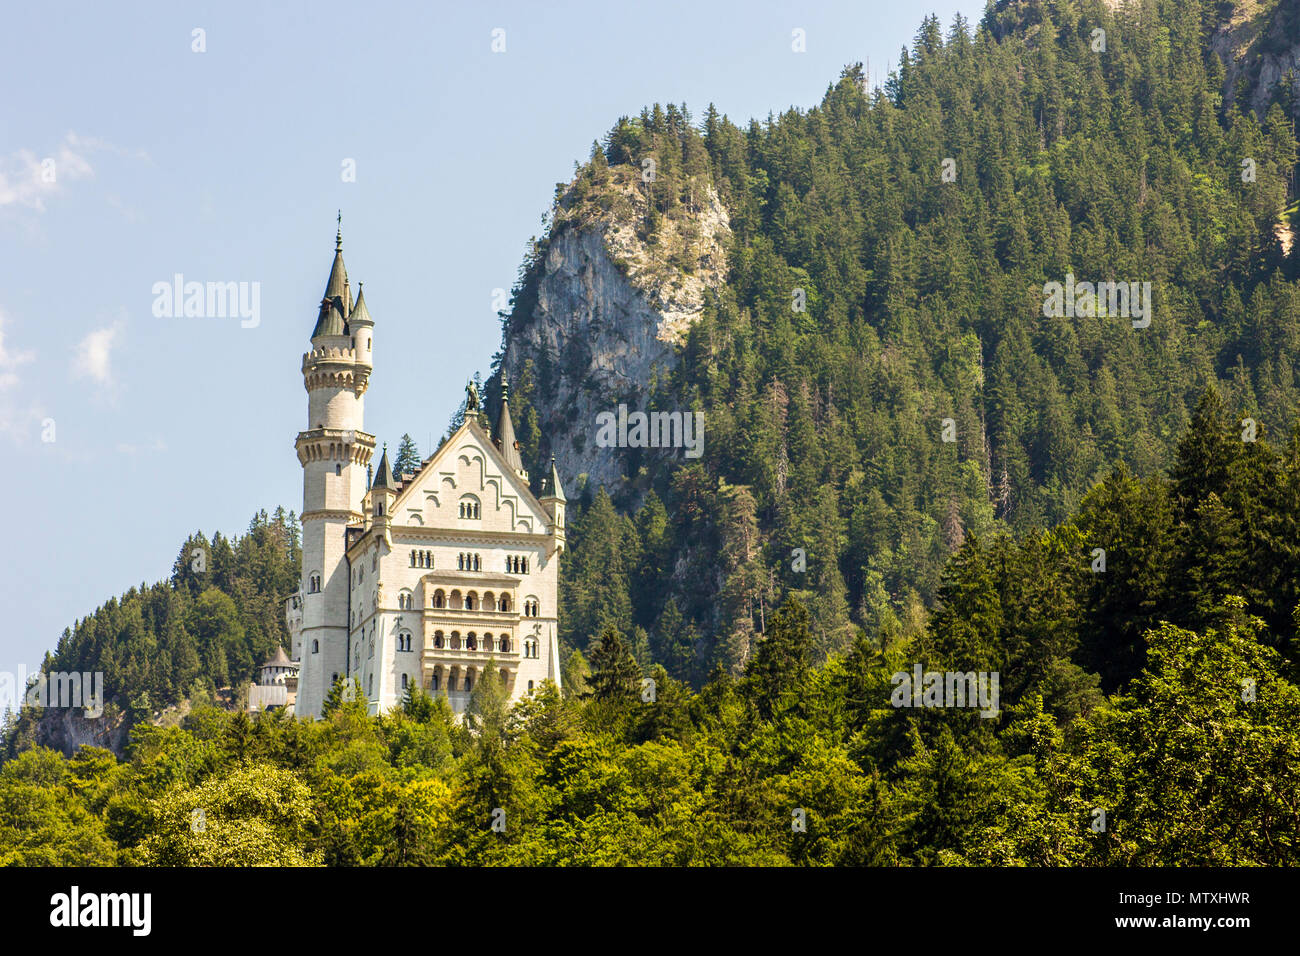 Schloss Neuschwanstein (New Swanstone Castle), a 19th-century Romanesque Revival palace commissioned by Ludwig II of Bavaria near Fussen, Germany - Stock Image